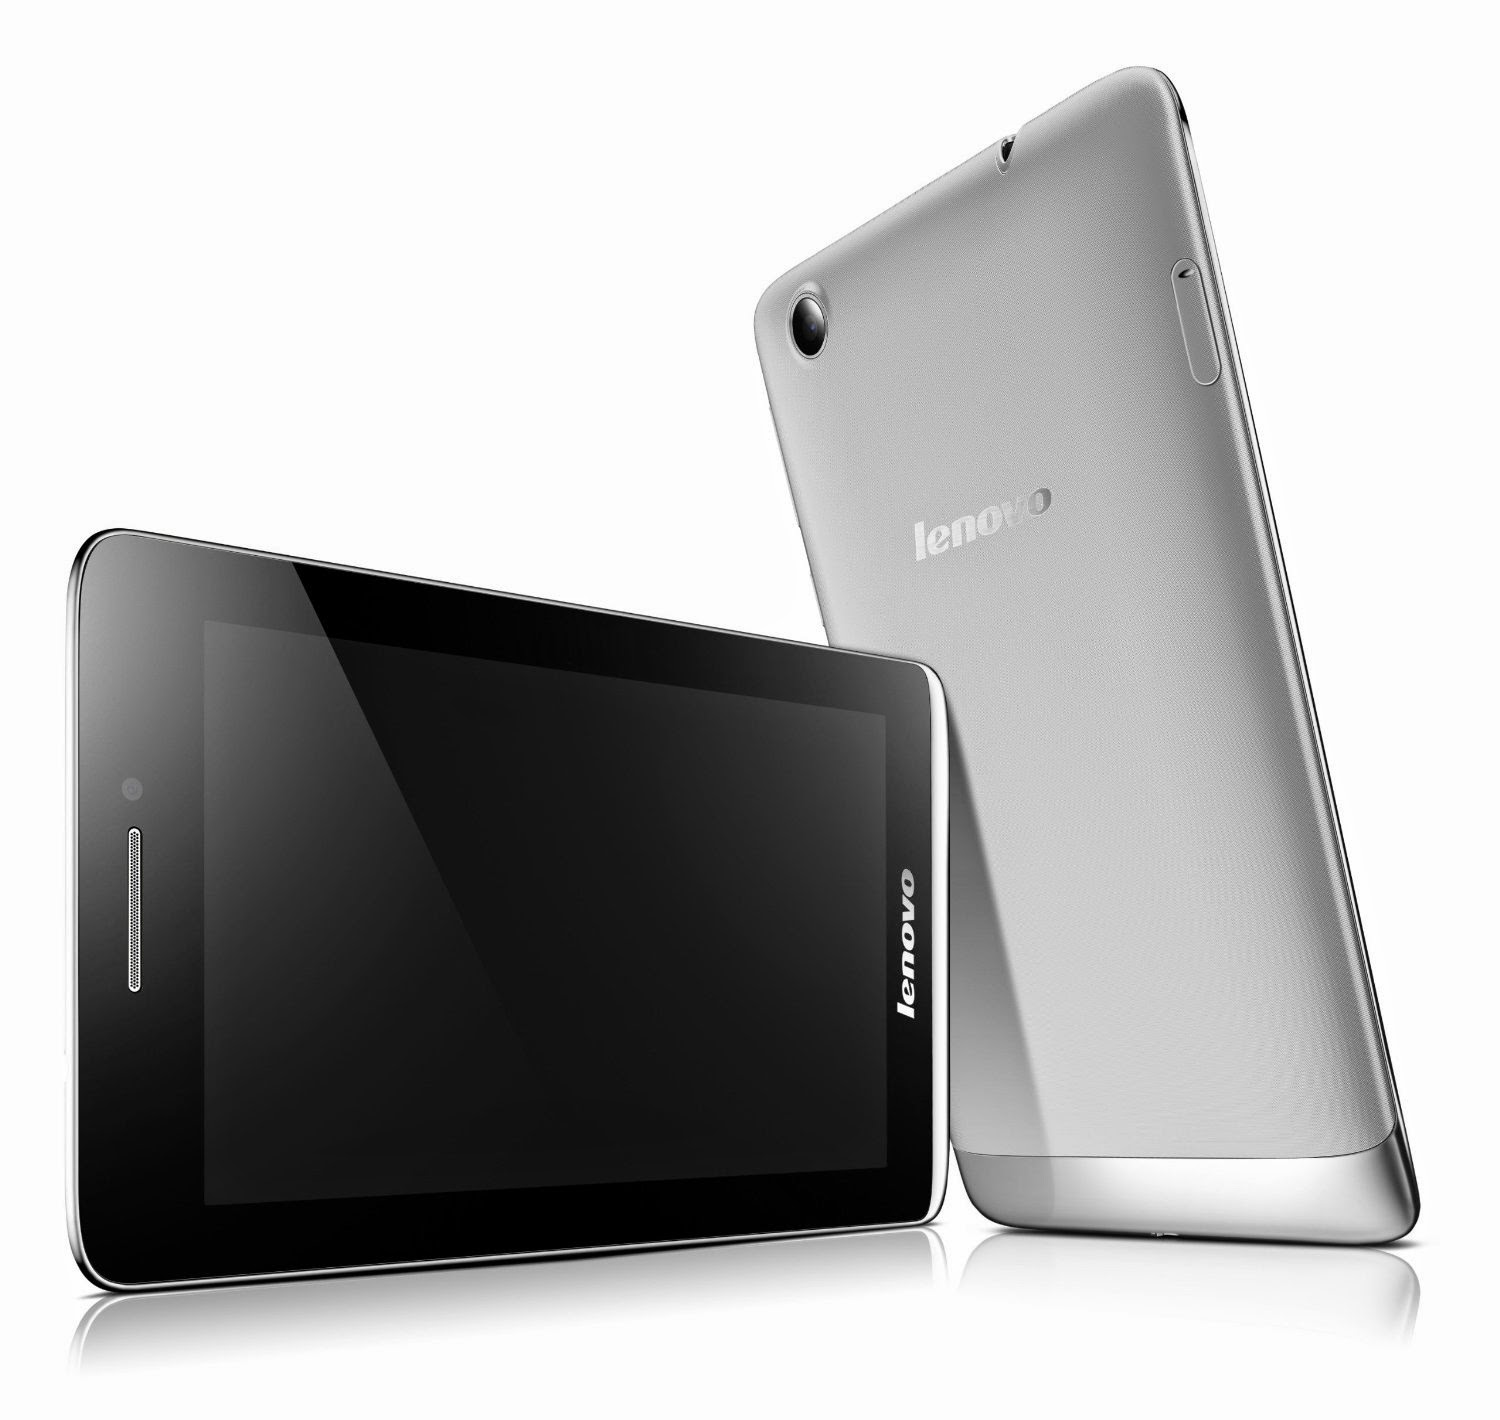 Lenovo IdeaTab S5000 7-Inch 16 GB Tablet